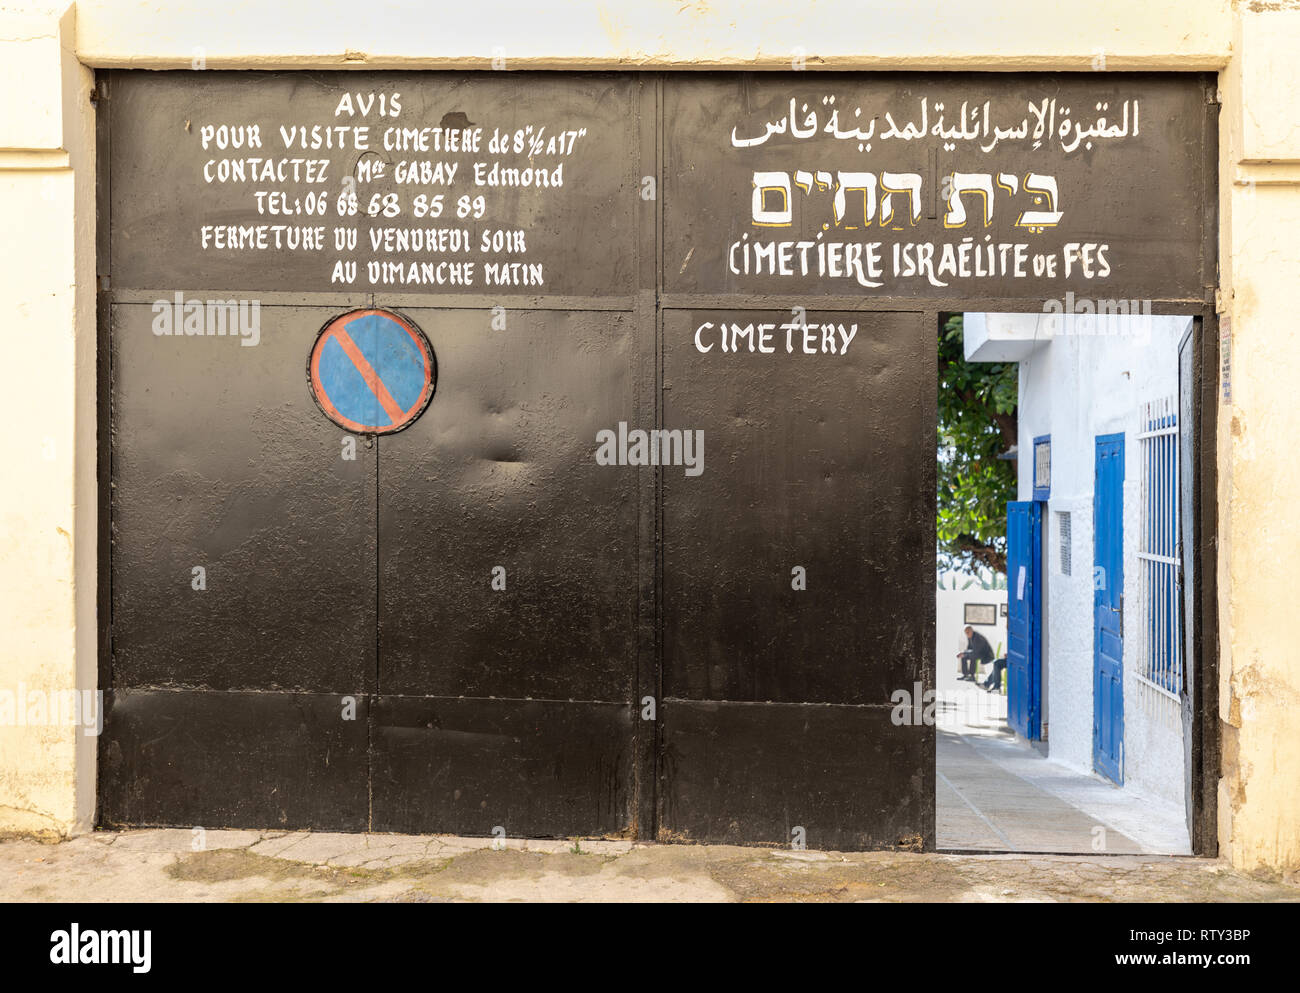 Entrance to Jewish Cemetery, Fes, Morocco - Stock Image